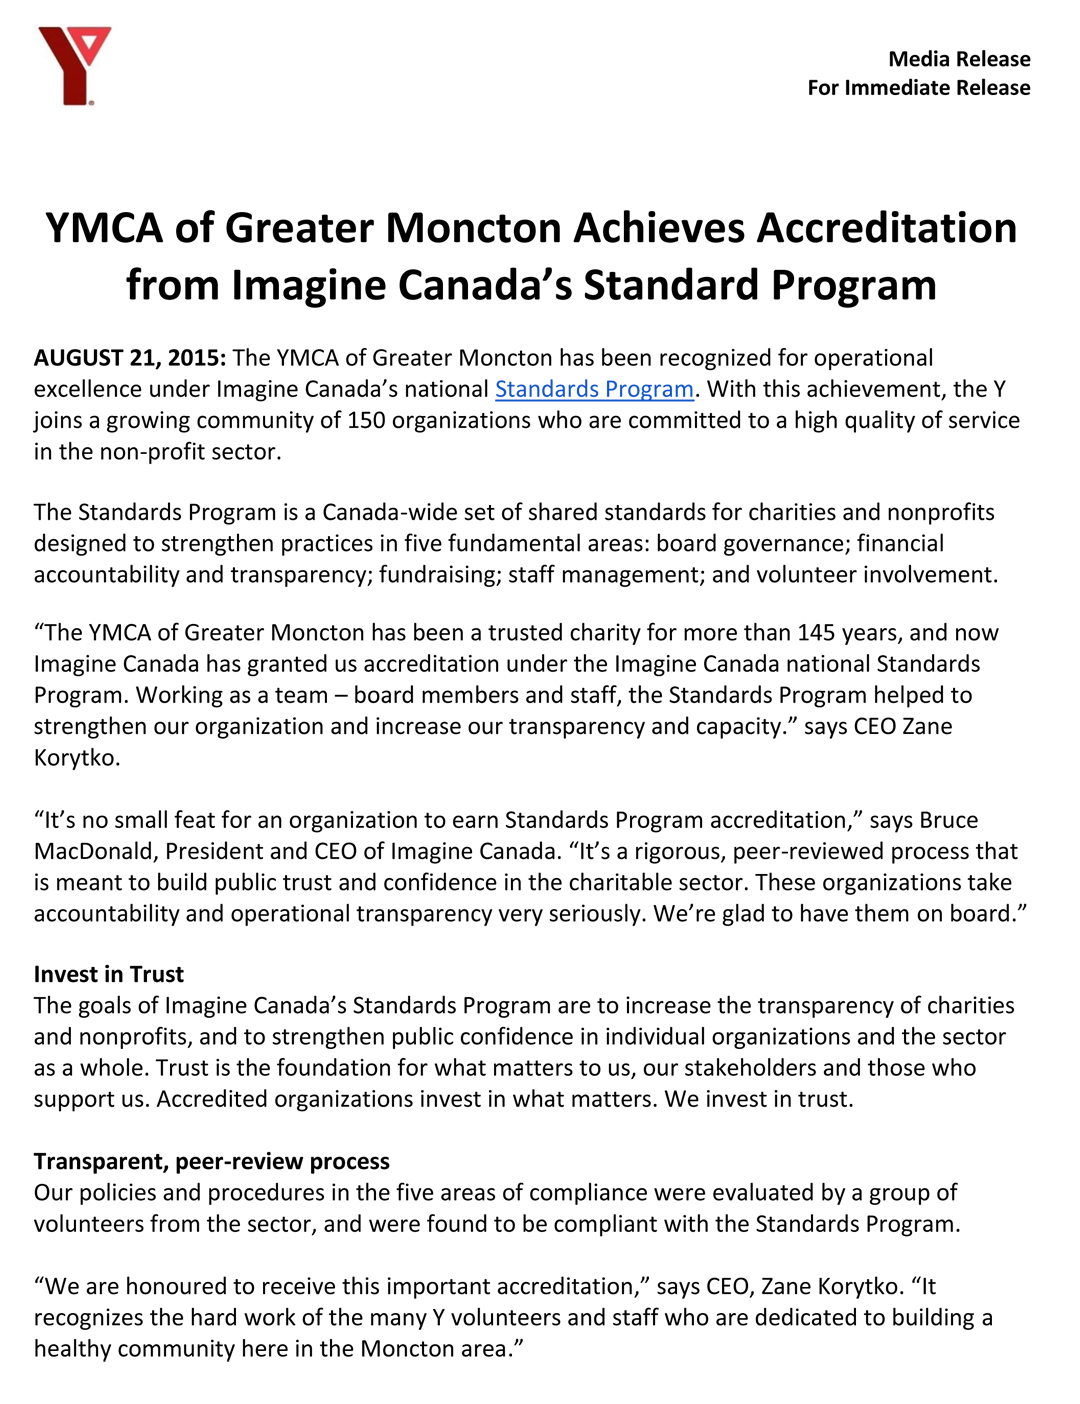 YMCA - Imagine Canada Program - August 2015